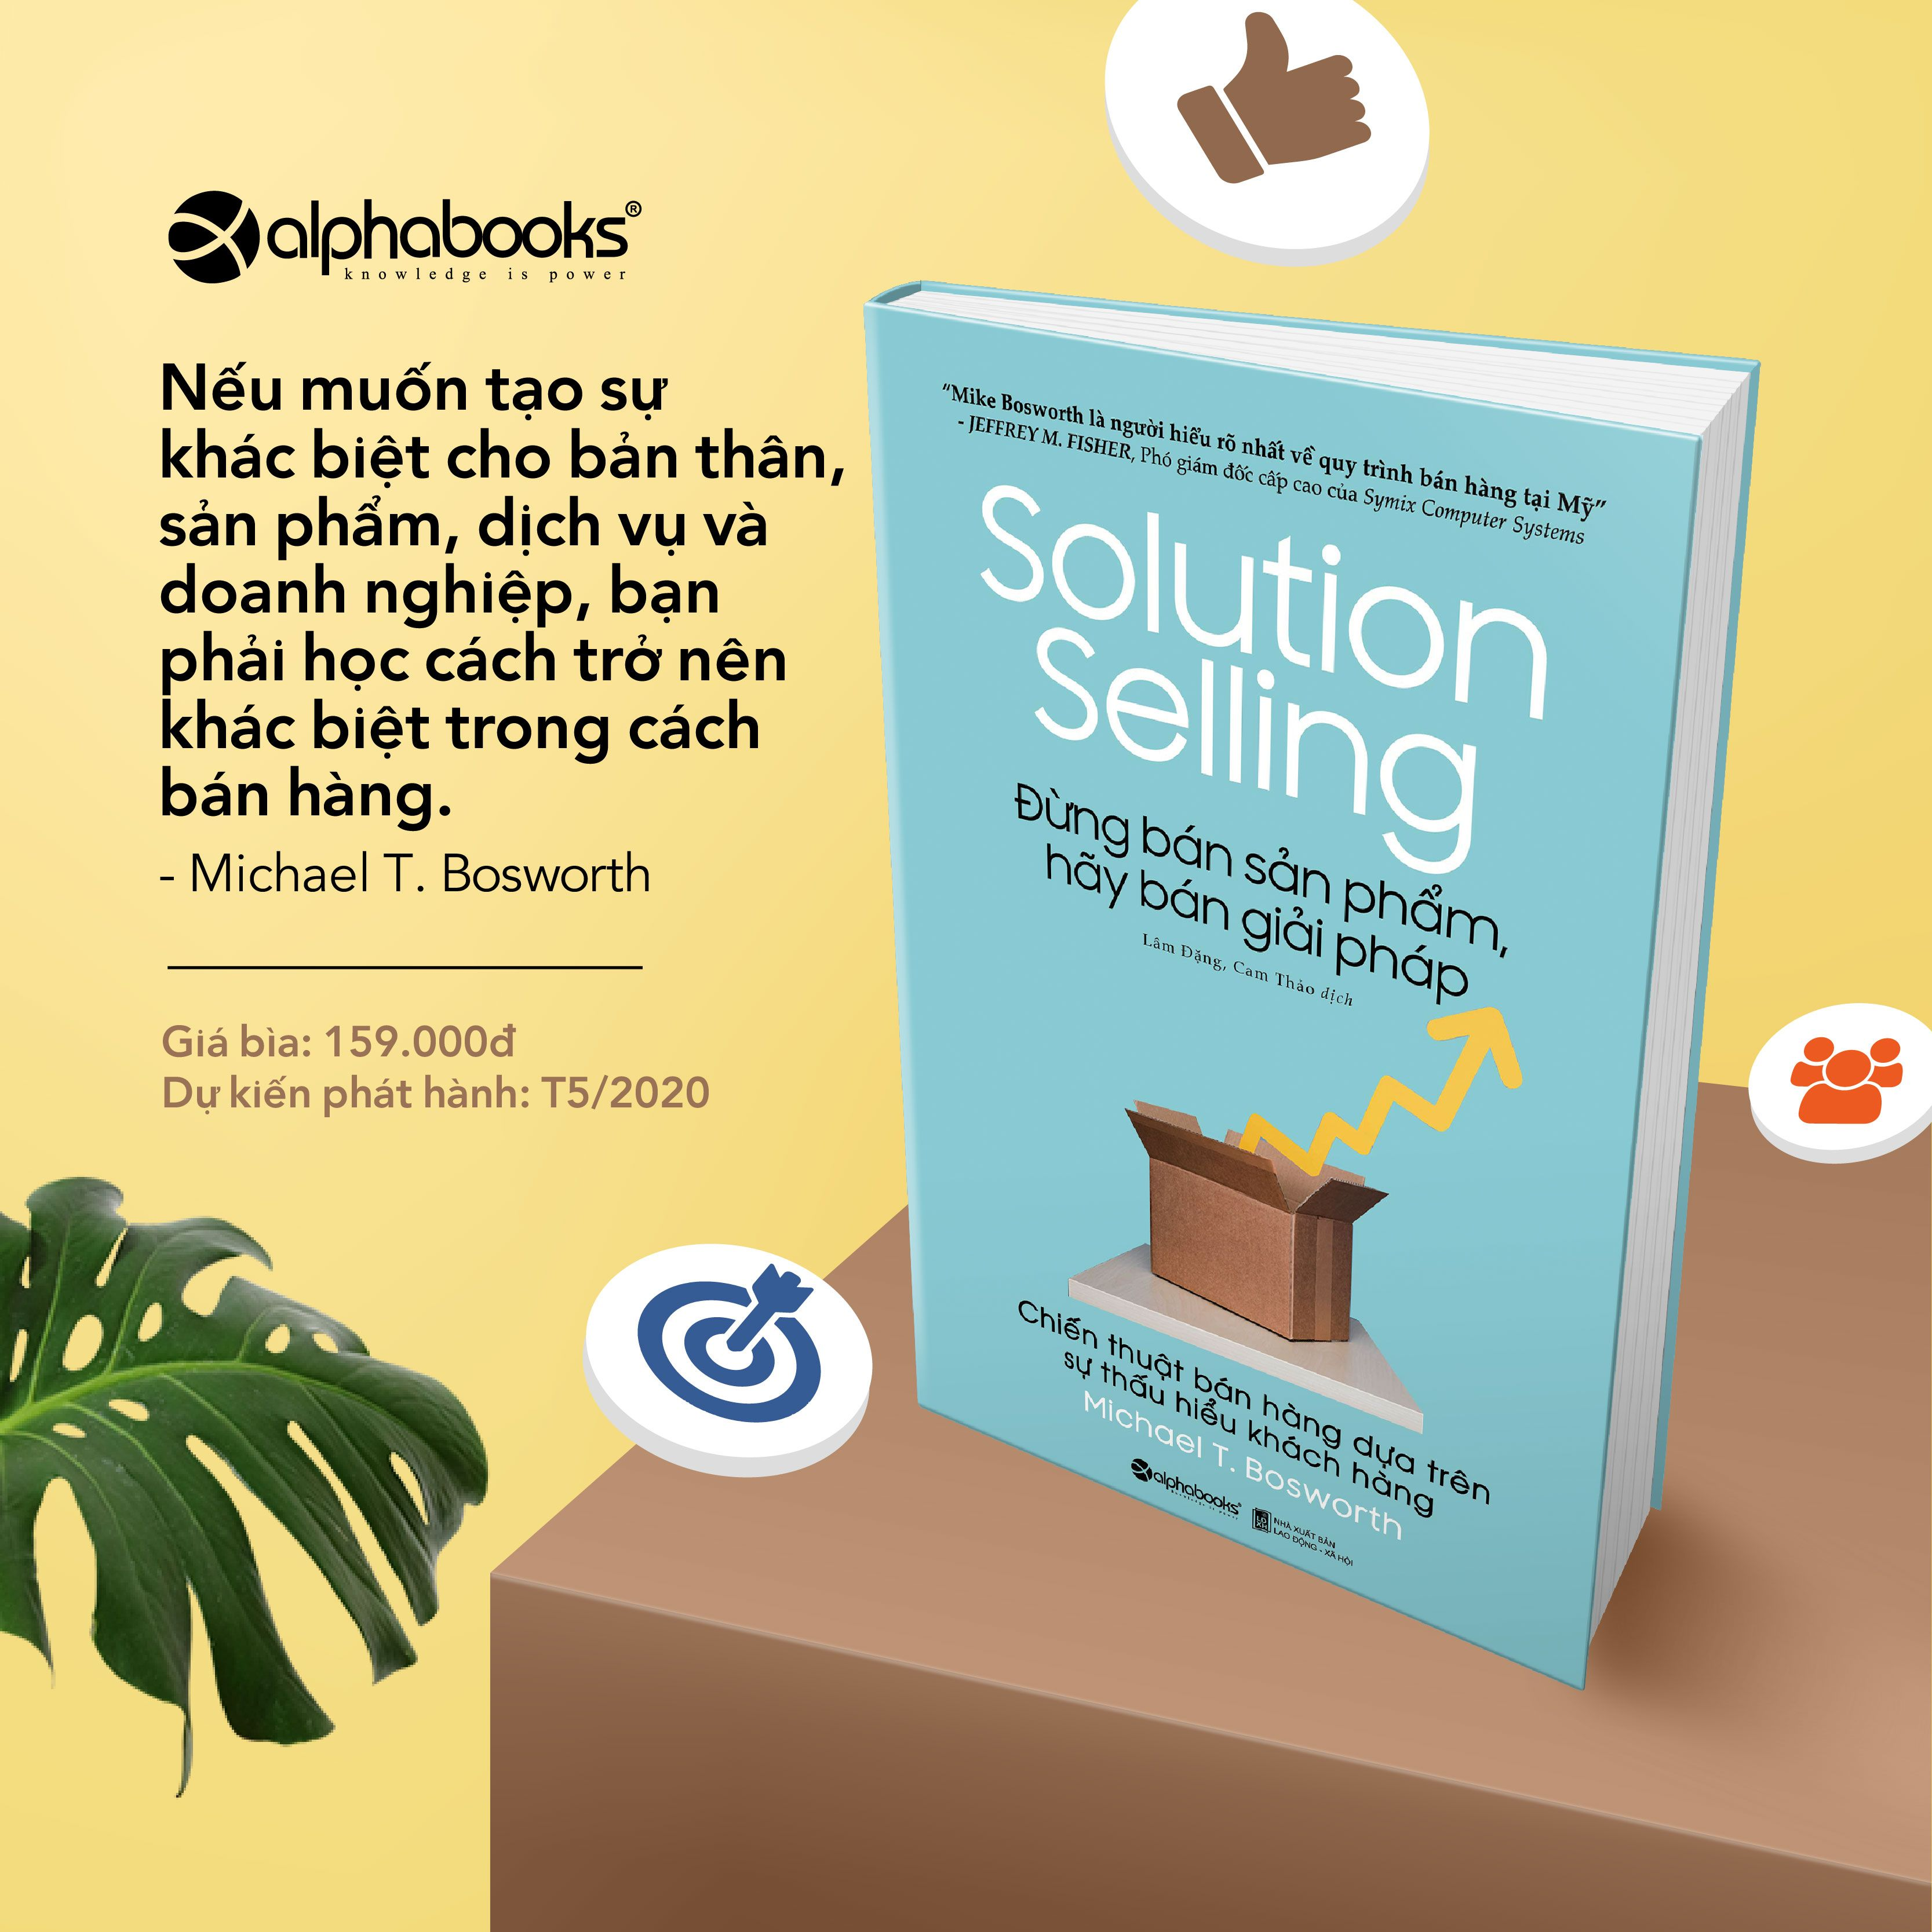 post solution selling 01